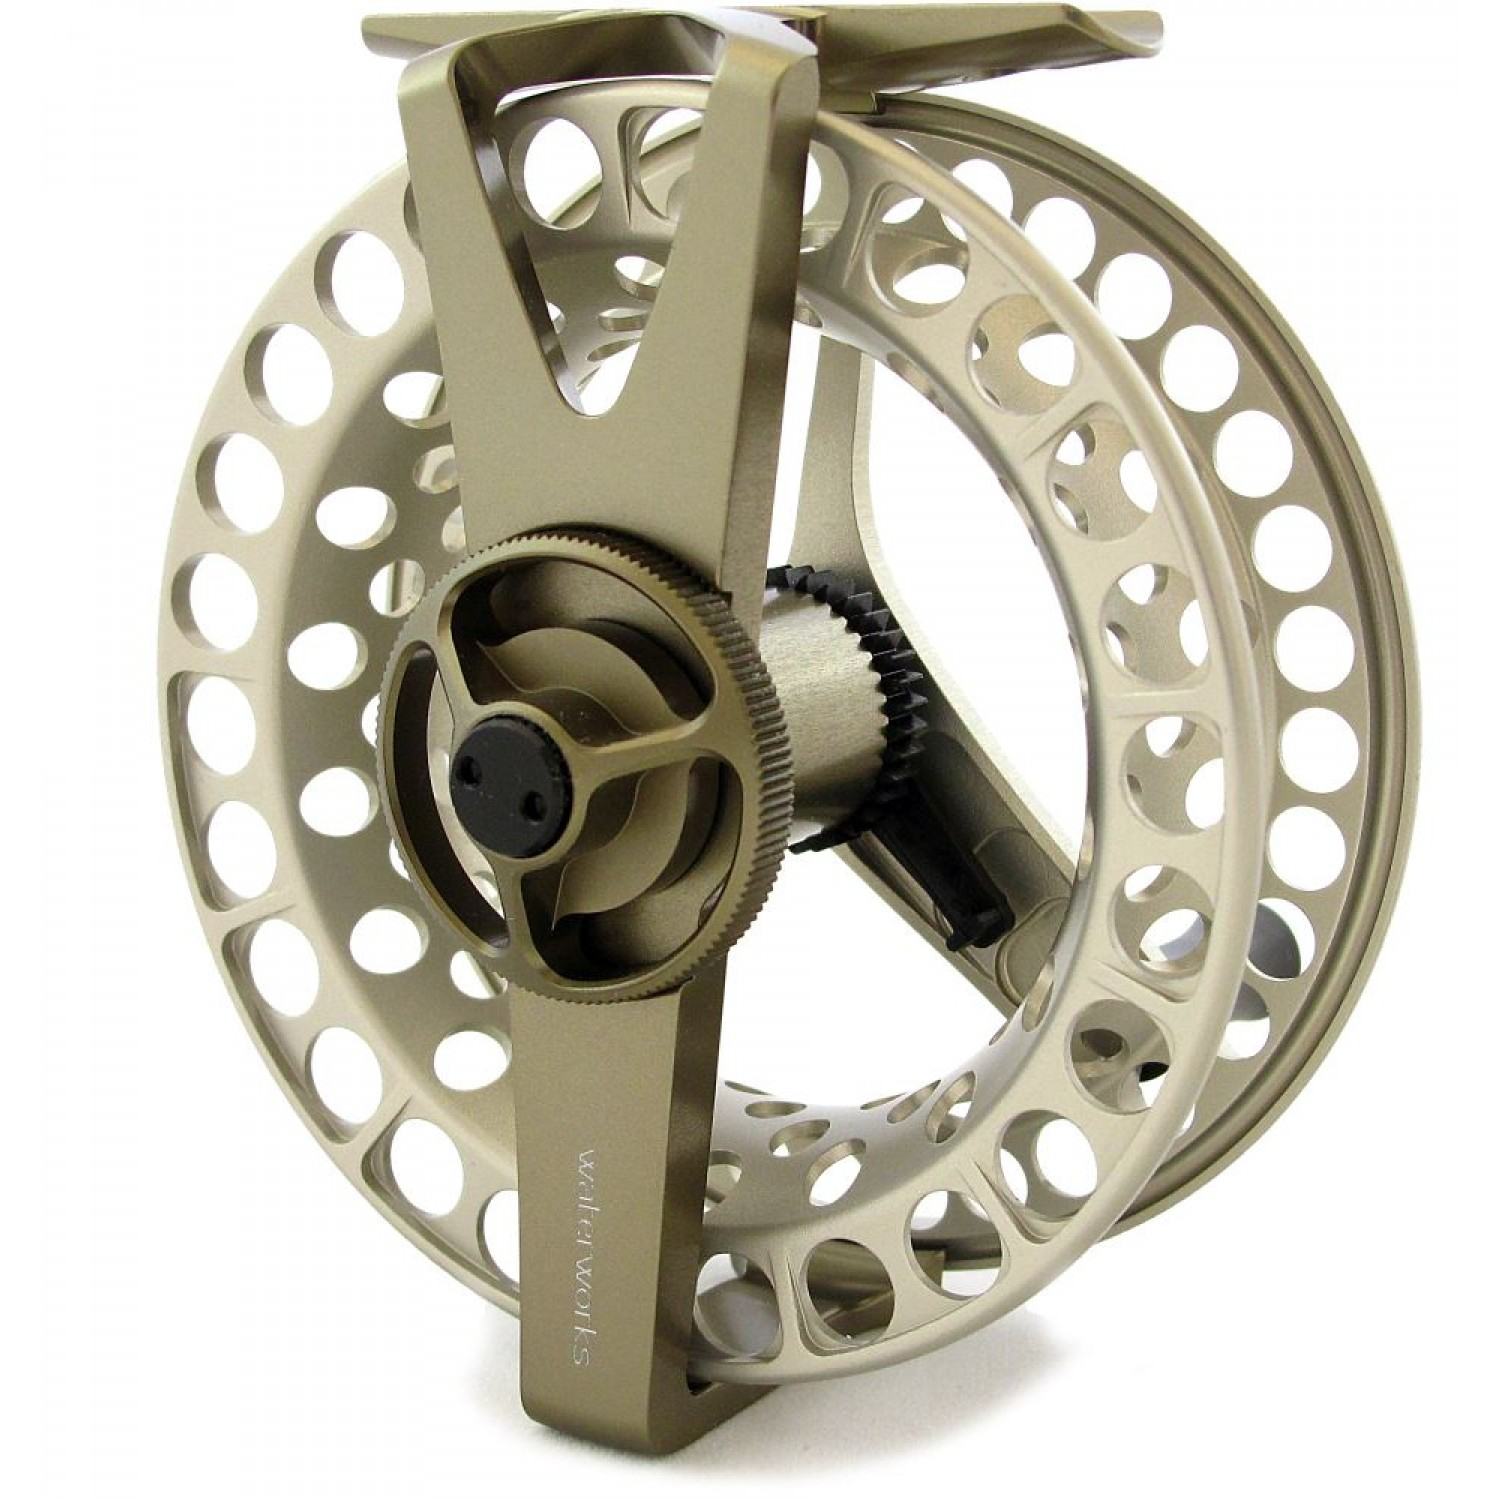 Waterworks Lamson Force SL Series II